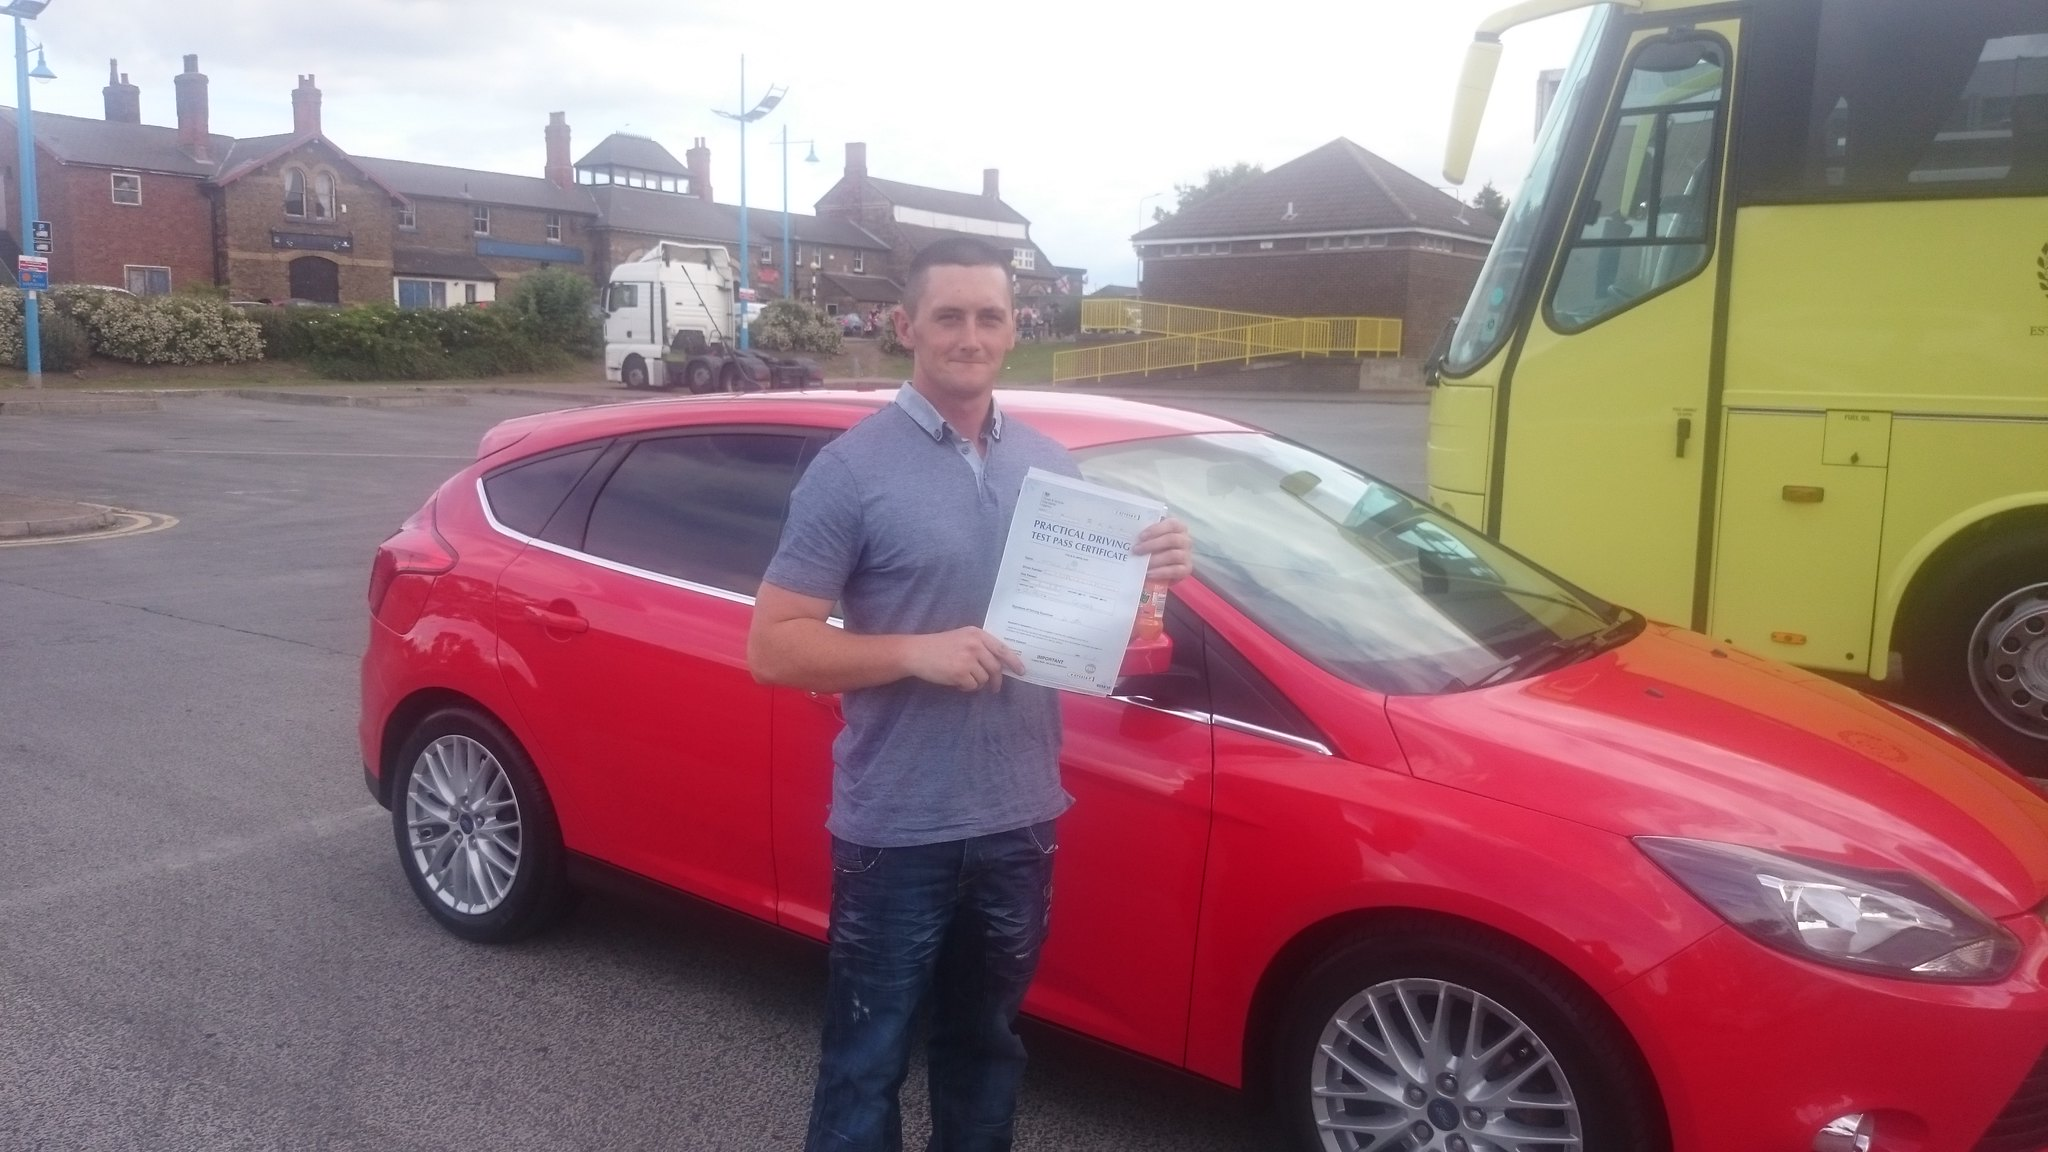 Matthew Borrill passes driving test in grimsby with 21st Century Driving